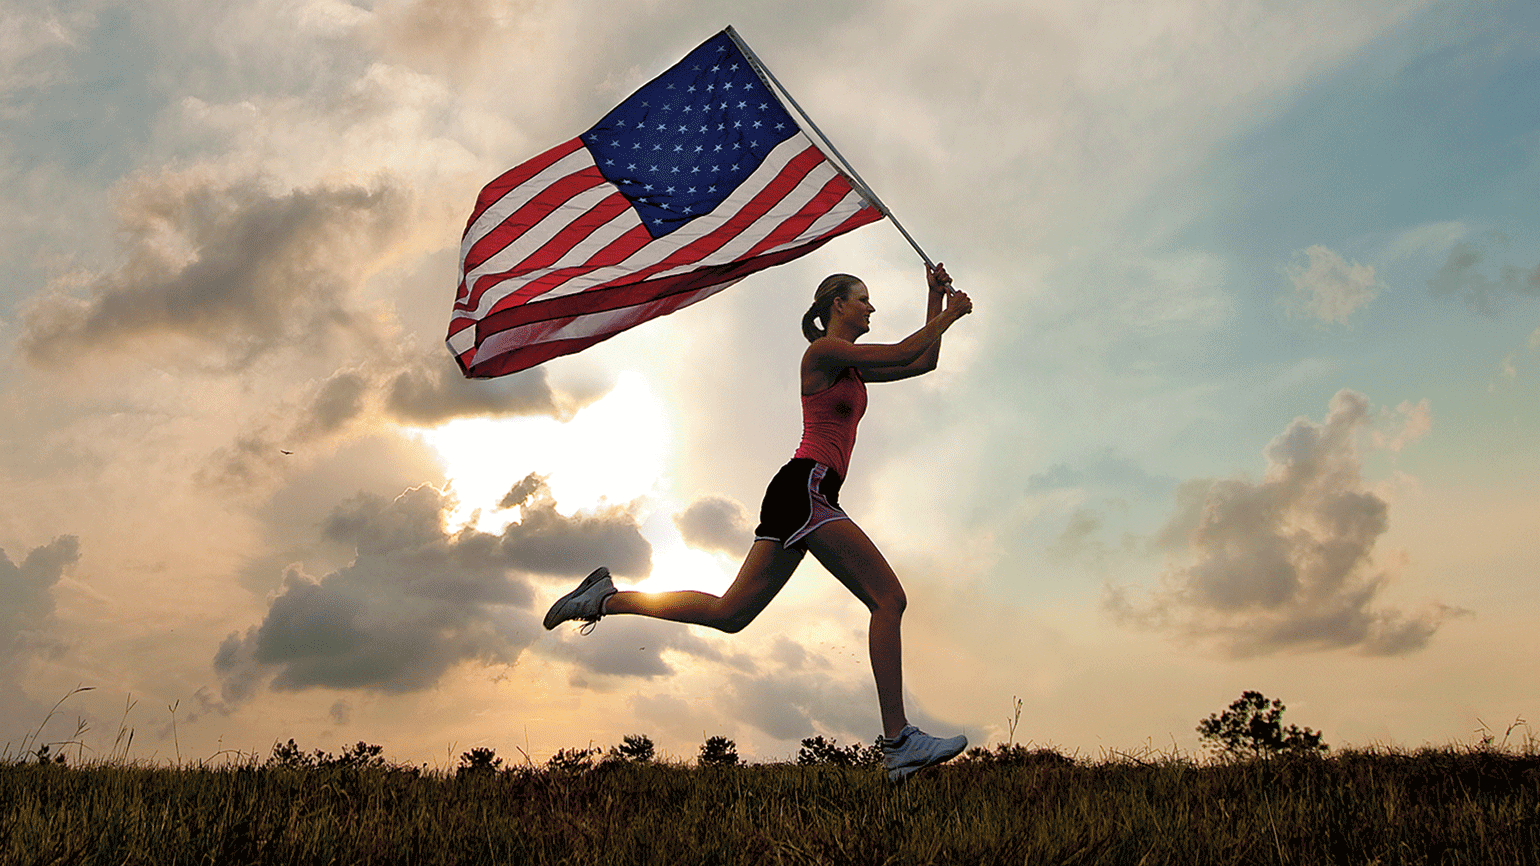 A woman runs at sunrise carrying a large American flag